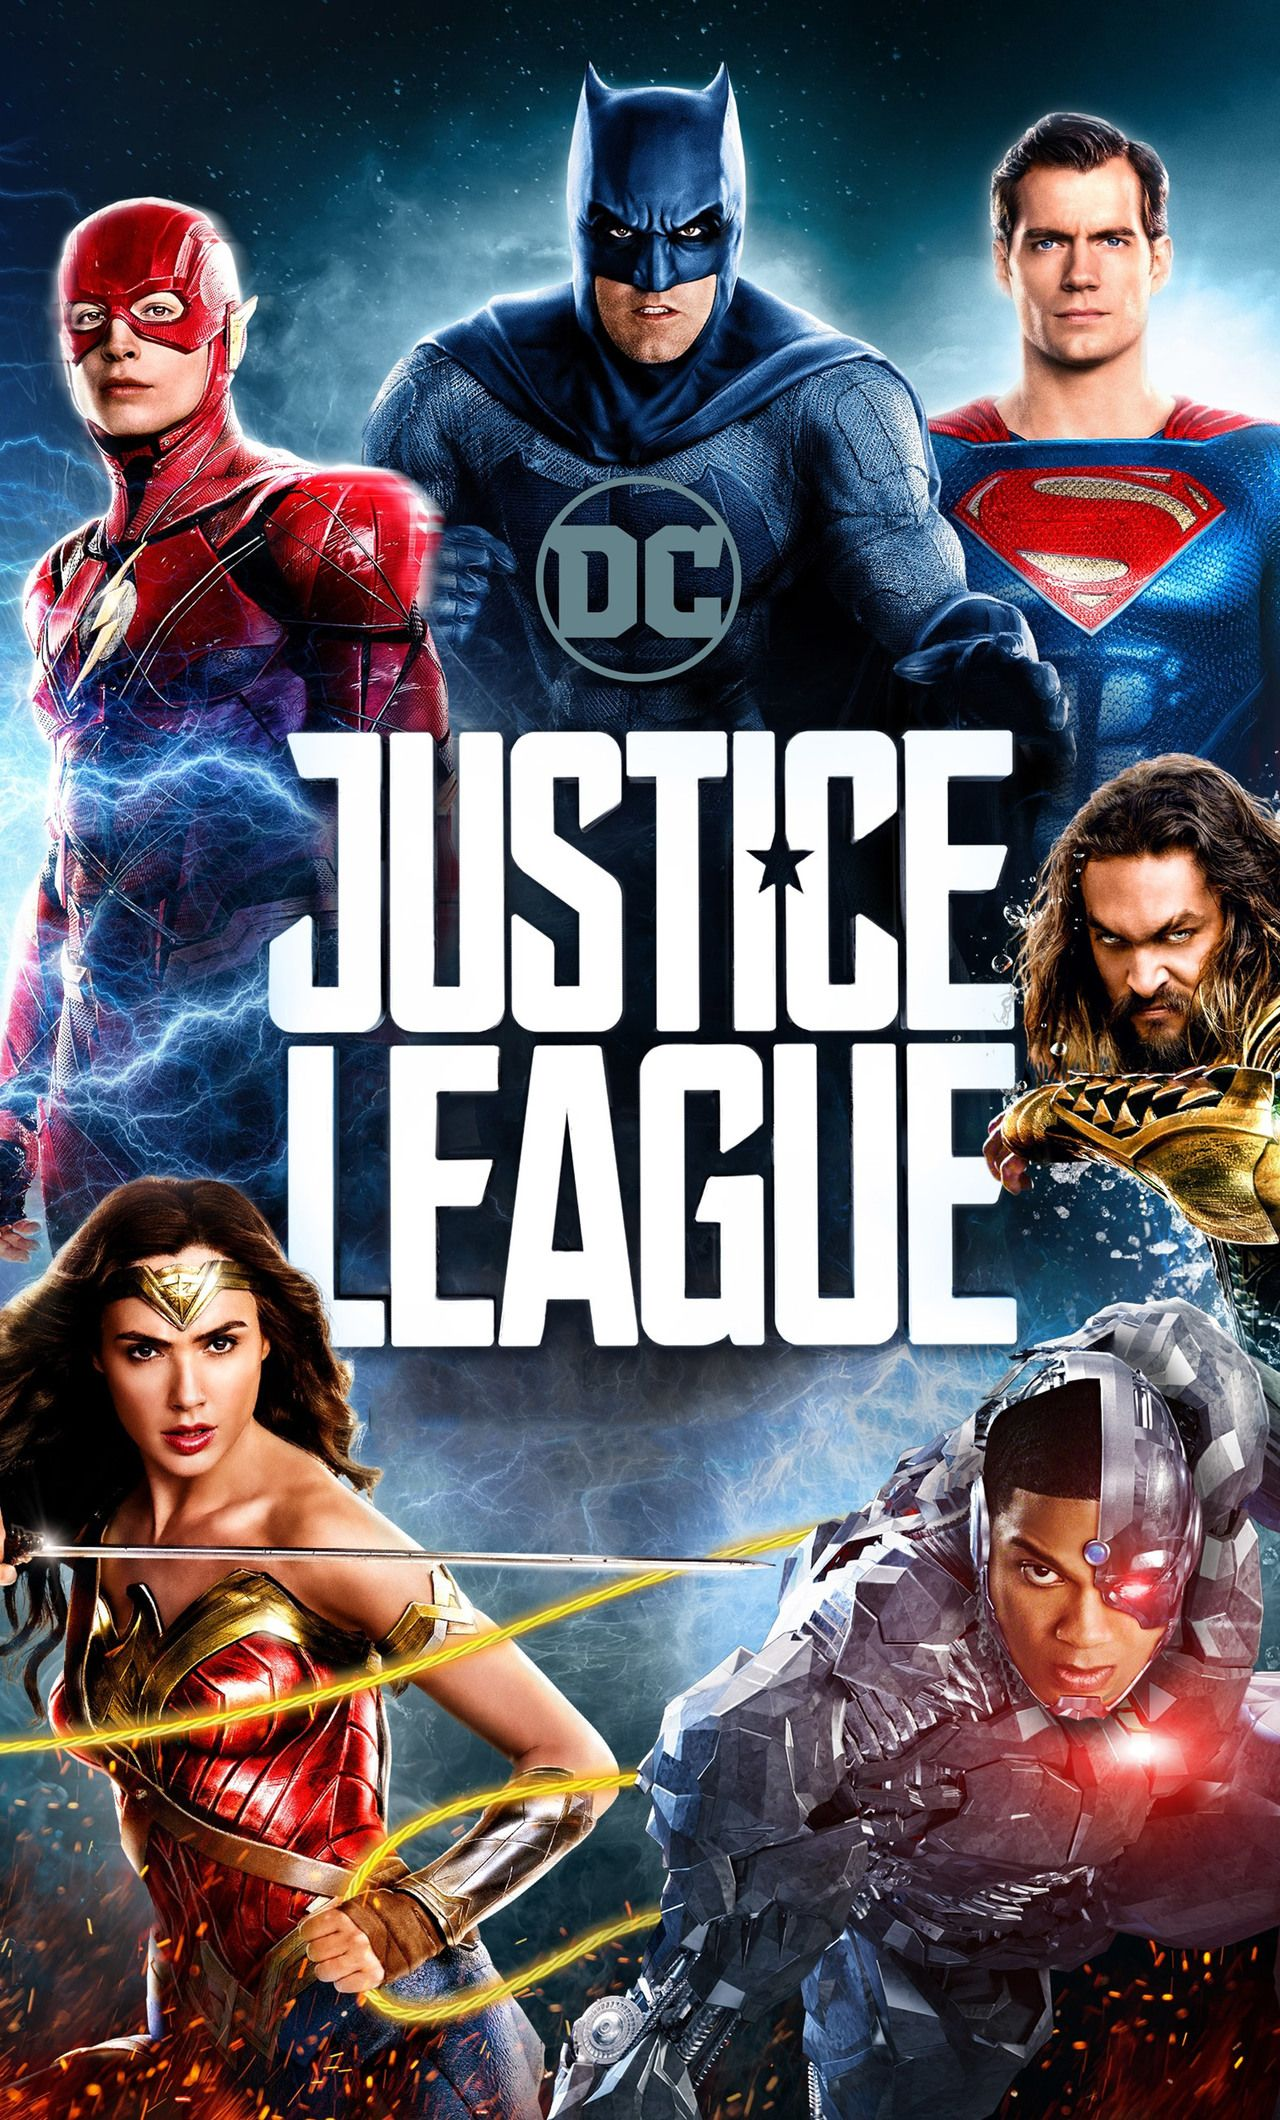 Justice League Iphone Wallpapers Top Free Justice League Iphone